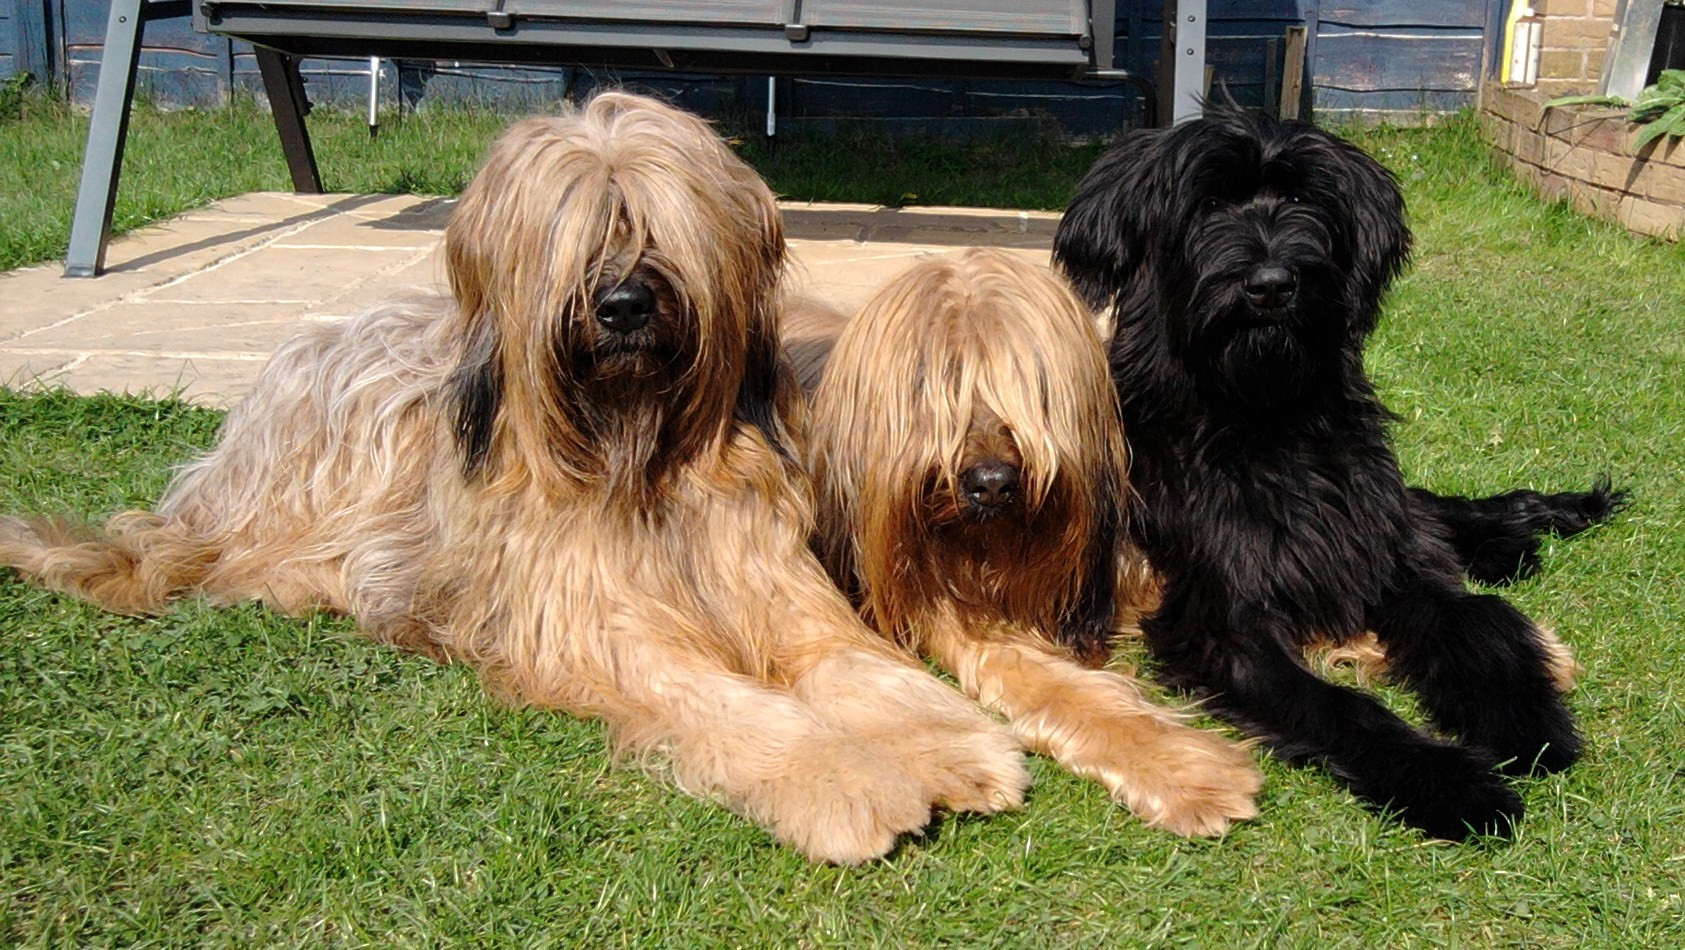 Best Dog Shampoo for Briard, Show Dog Shampoo, Crufts Shgampoo